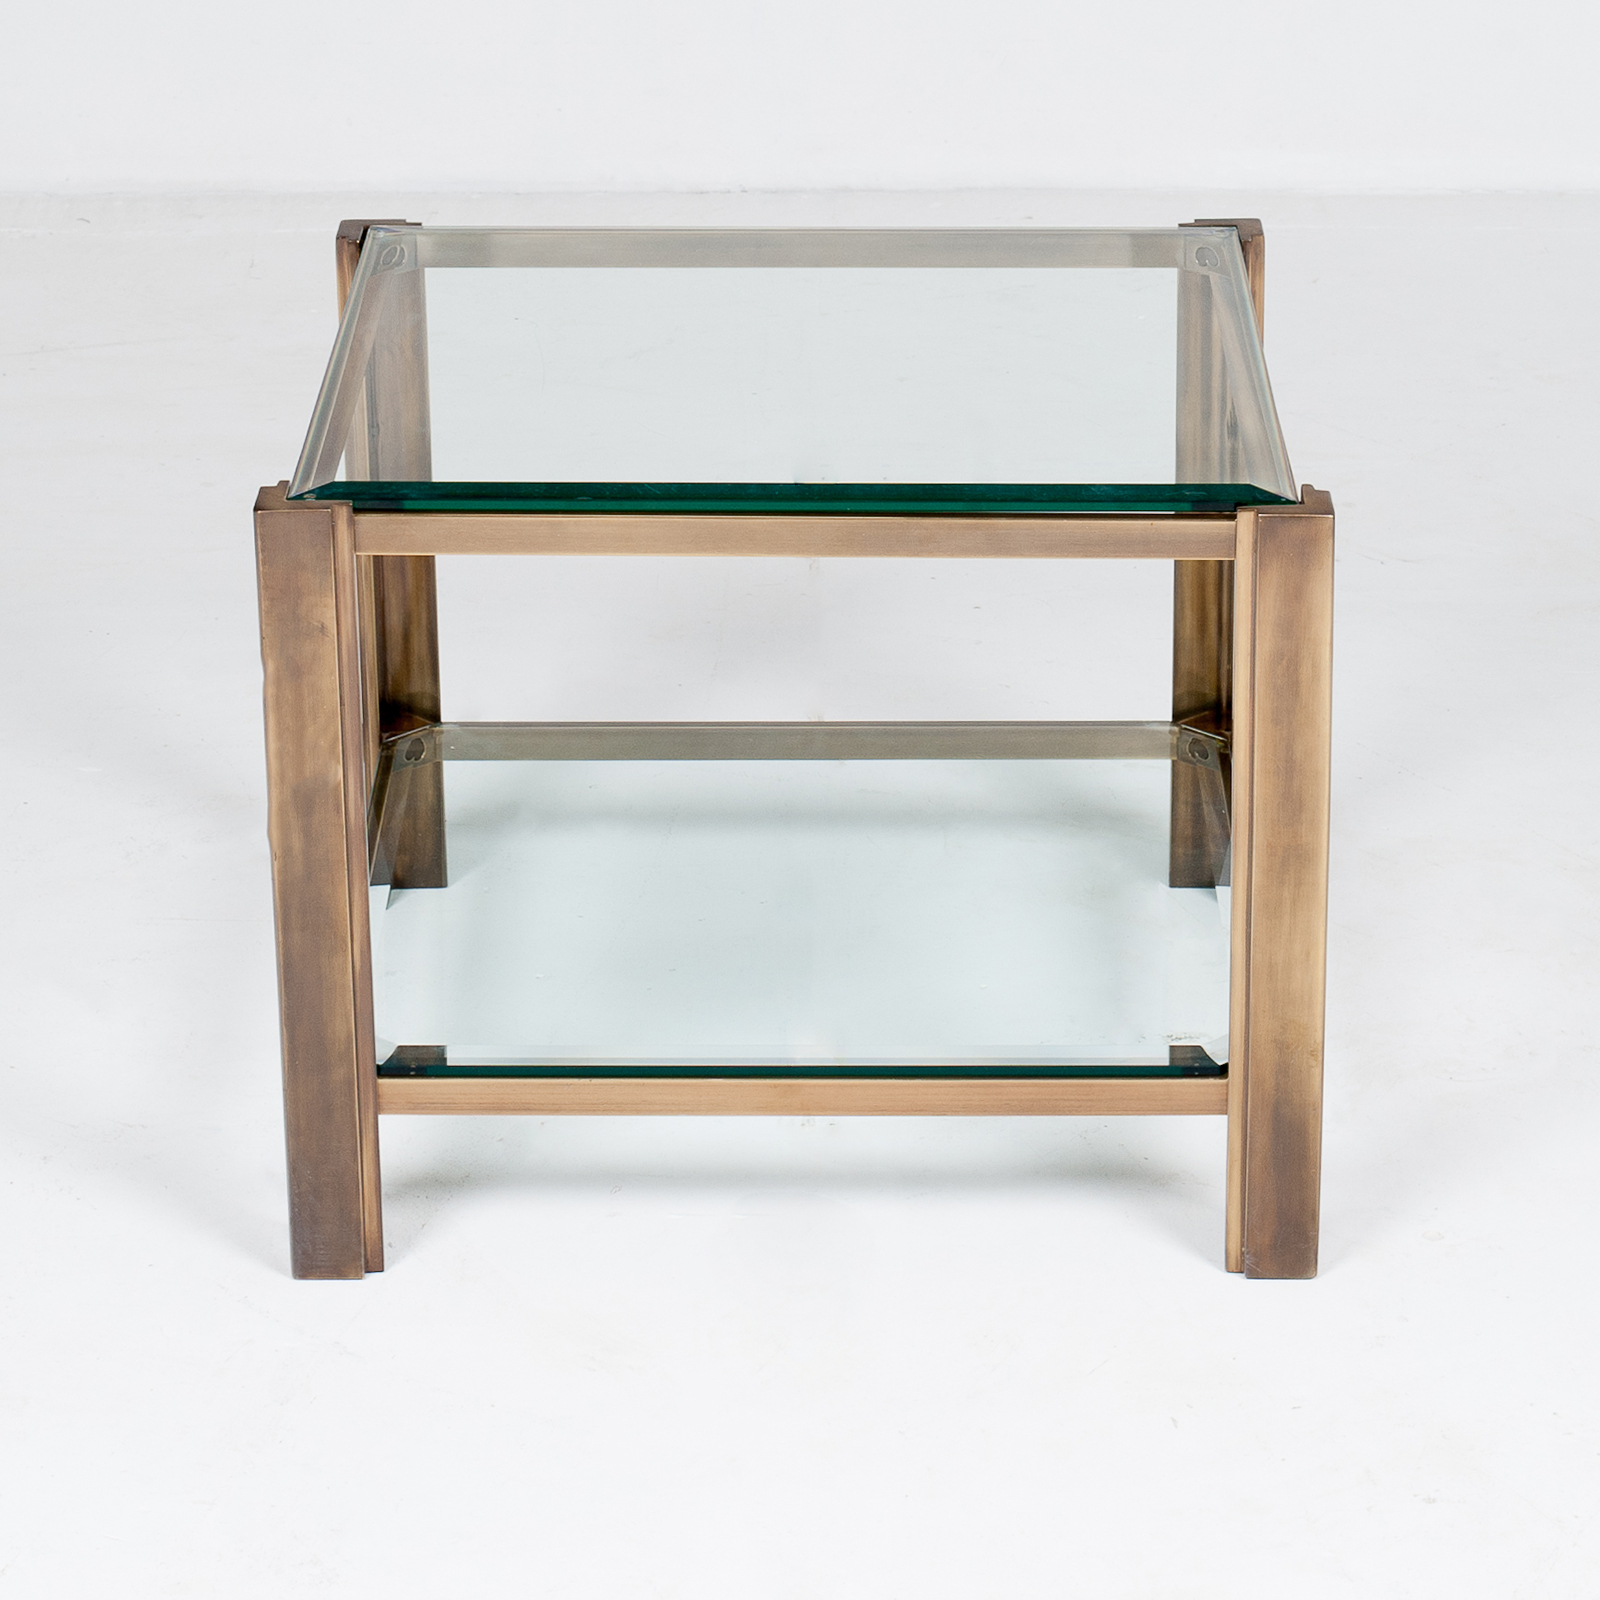 Side Table In The Style Of Peter Ghyzcy, 1970s, The Netherlands6